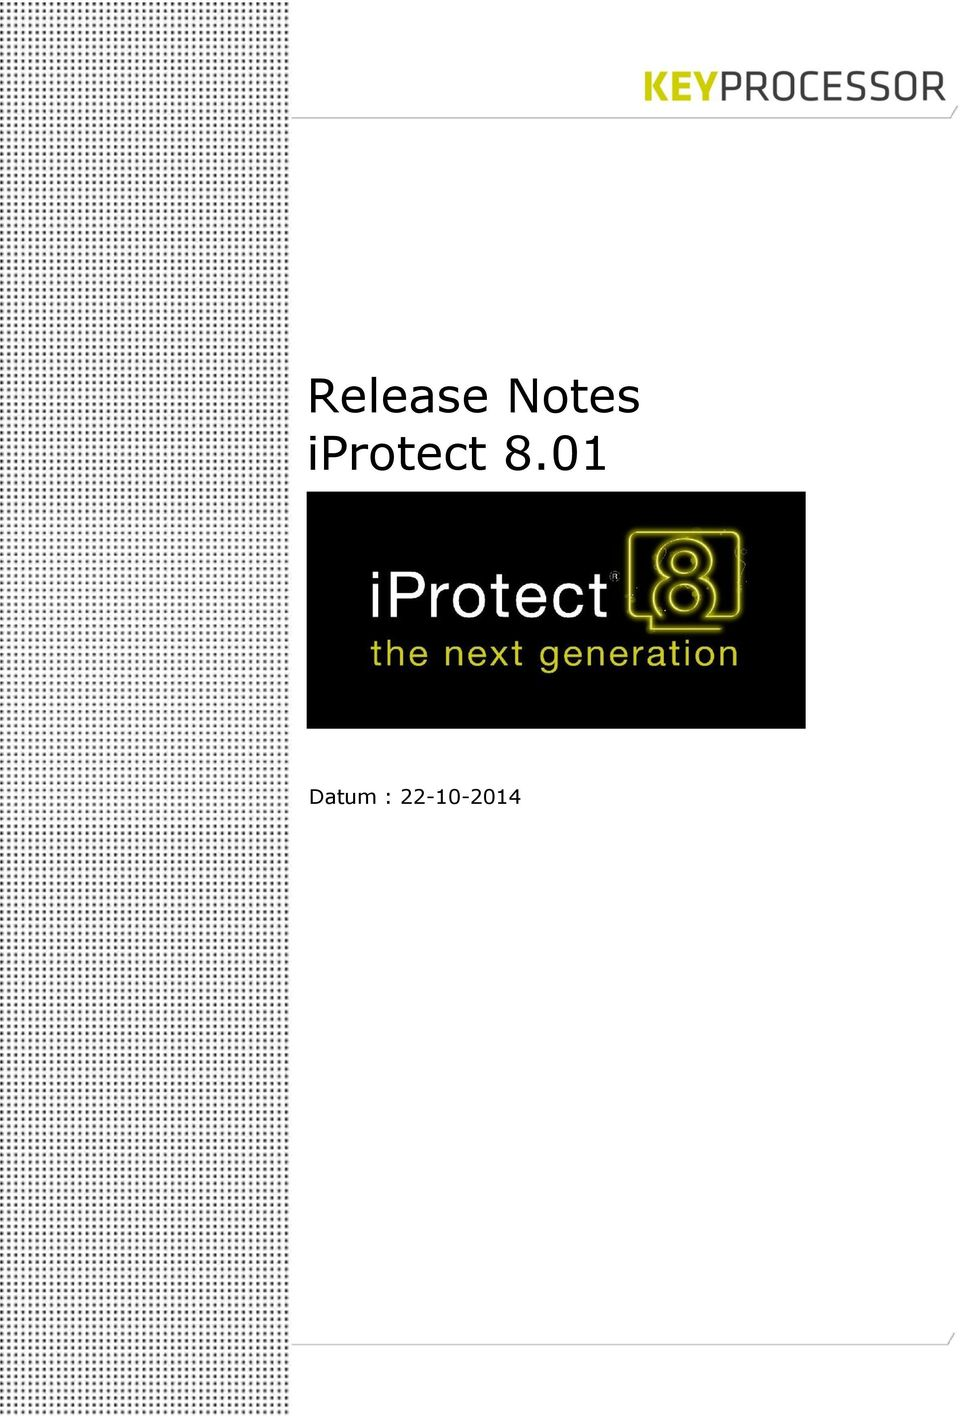 iprotect 8.